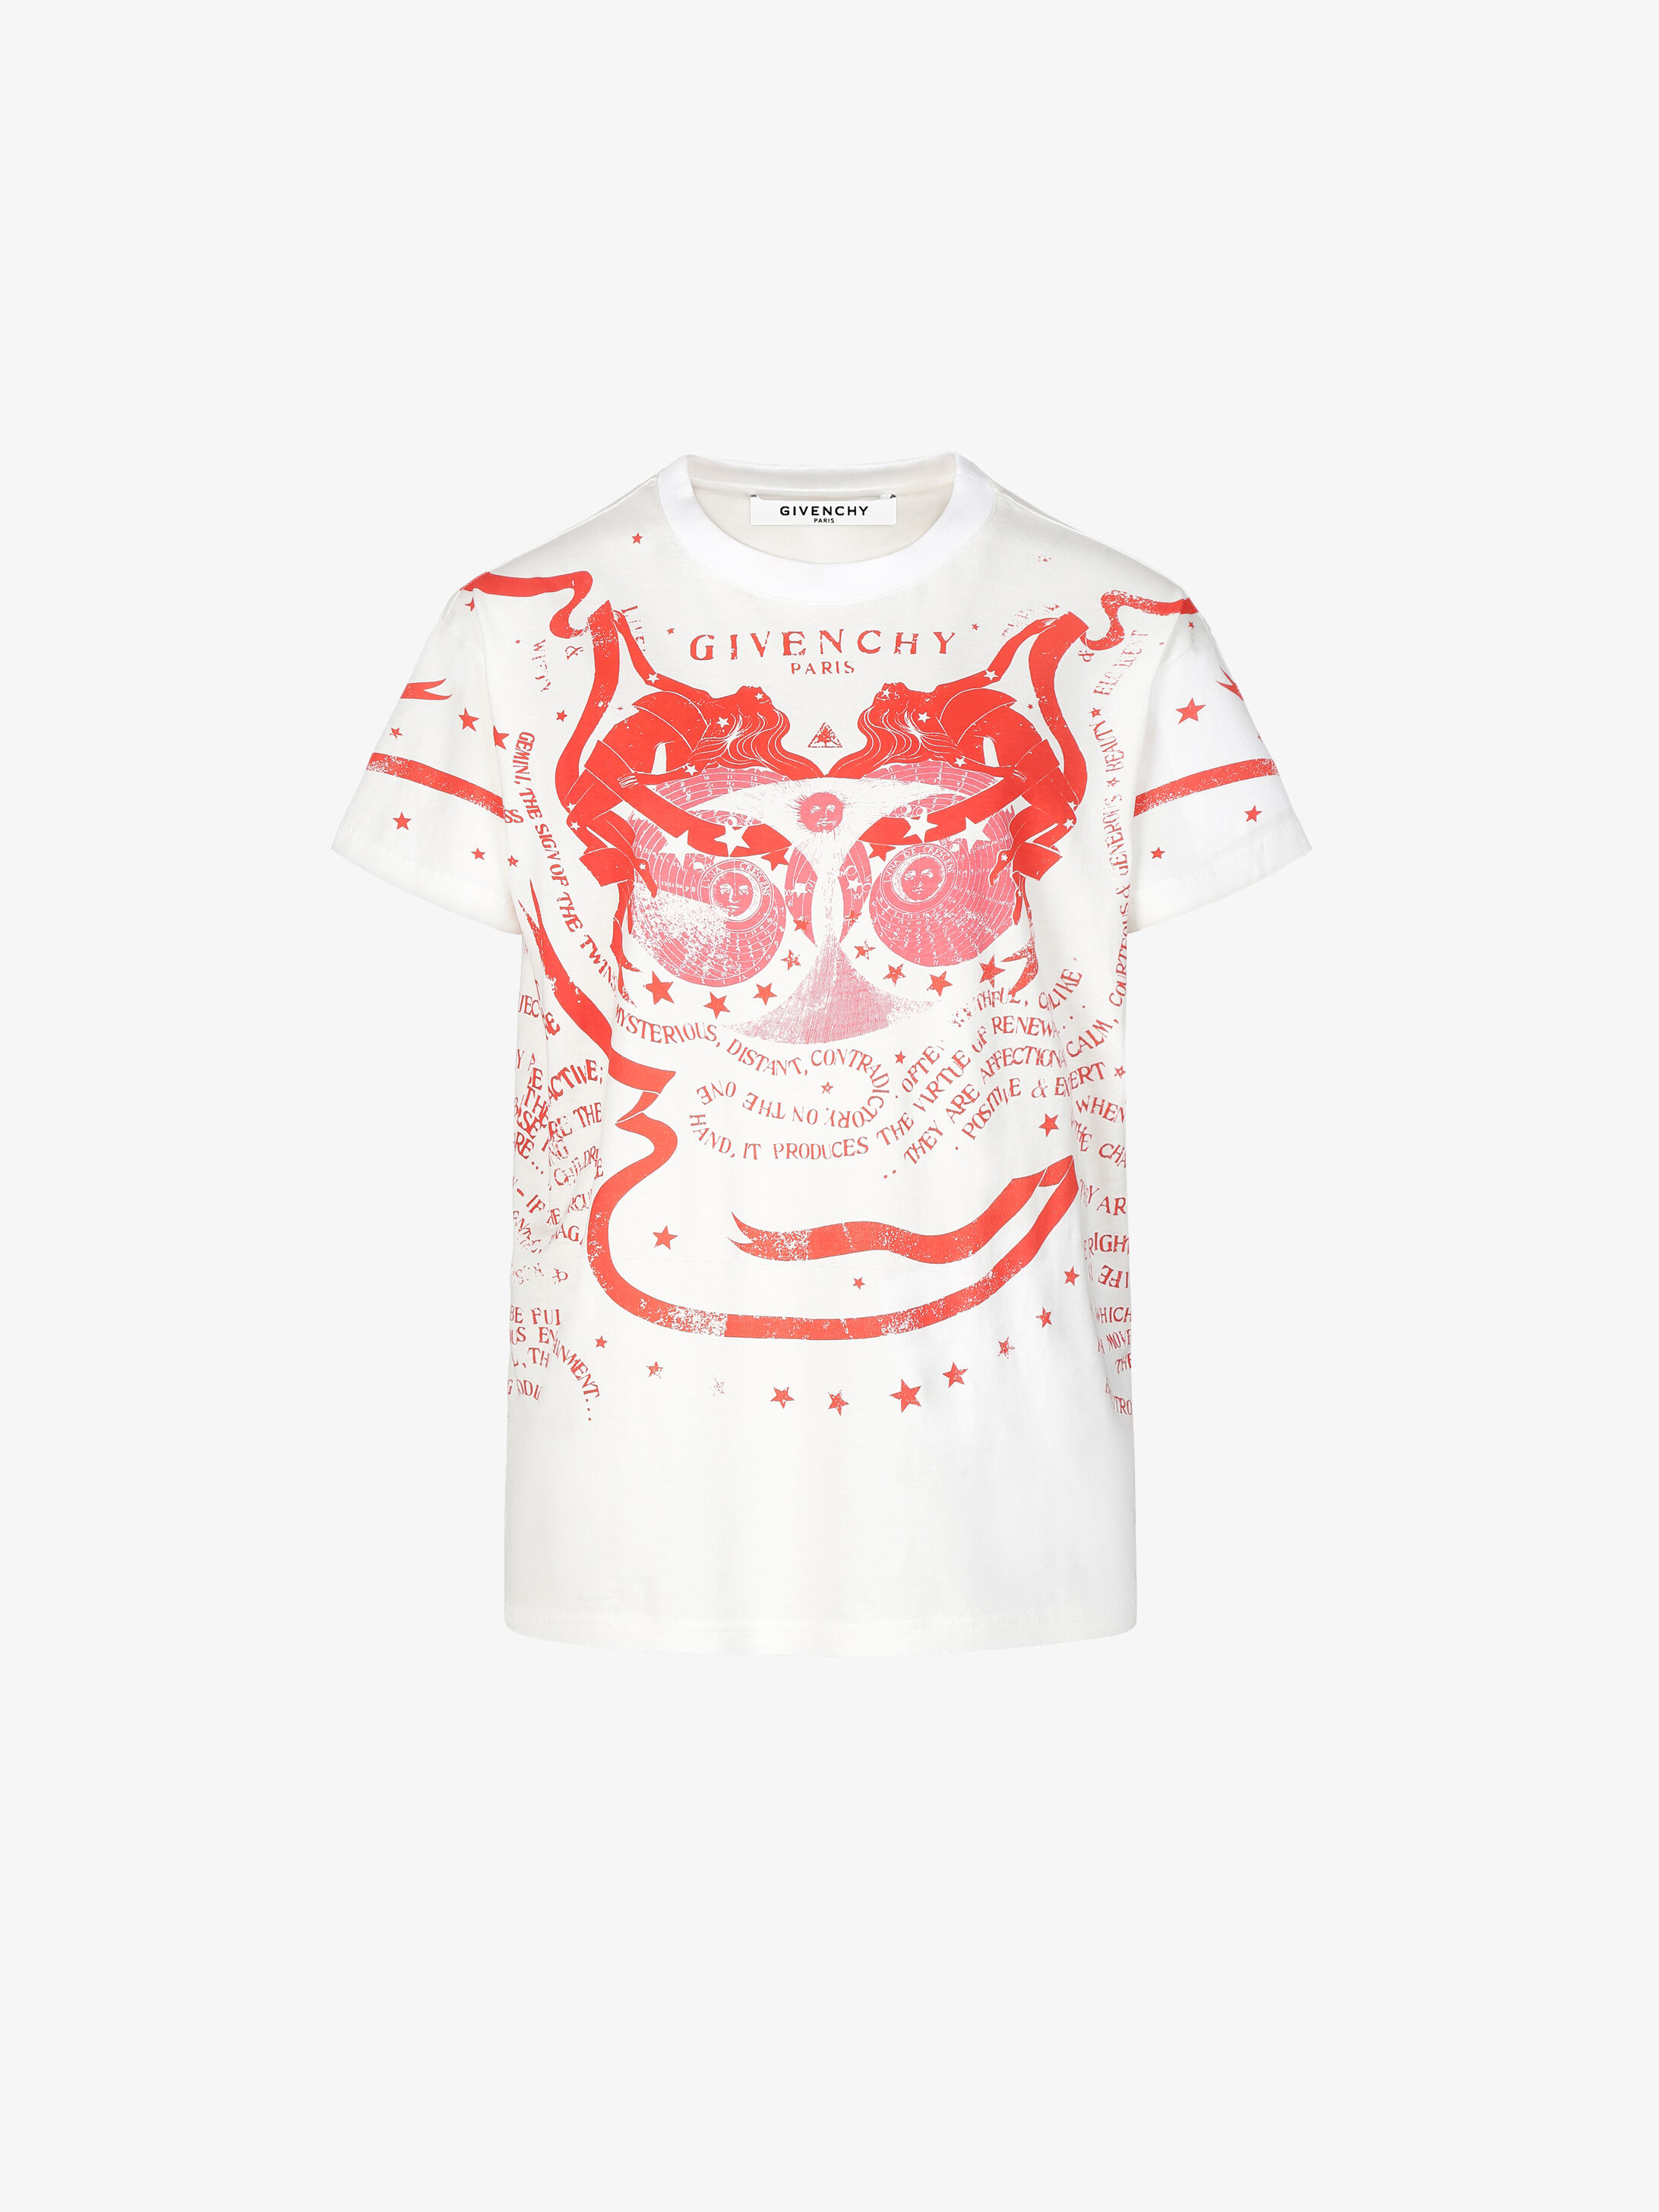 5b94a9da2066 Women s T-Shirts collection by Givenchy.